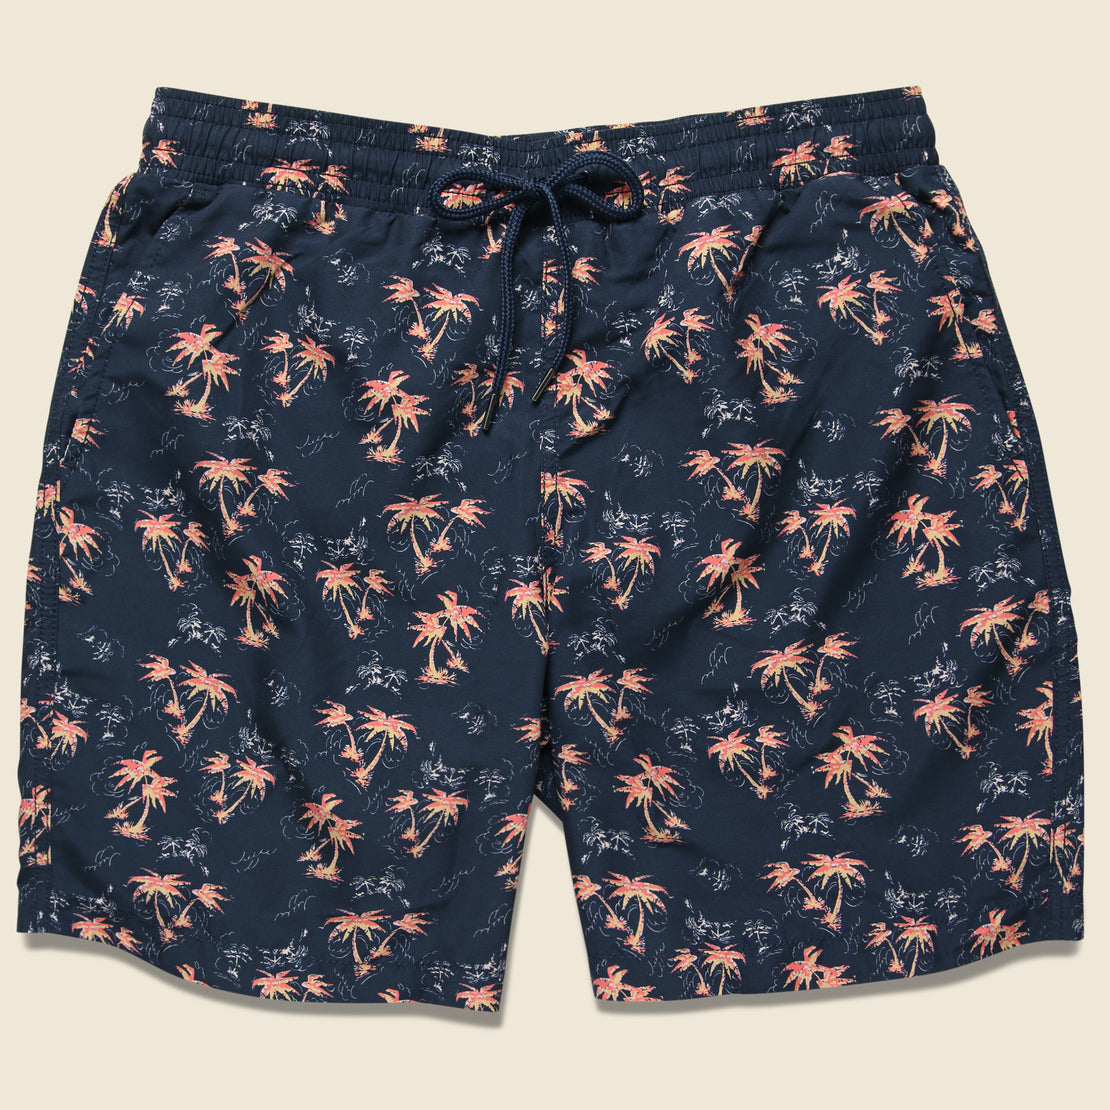 Grayers Burning Palm Swim Trunk - Carbon Spice Coral